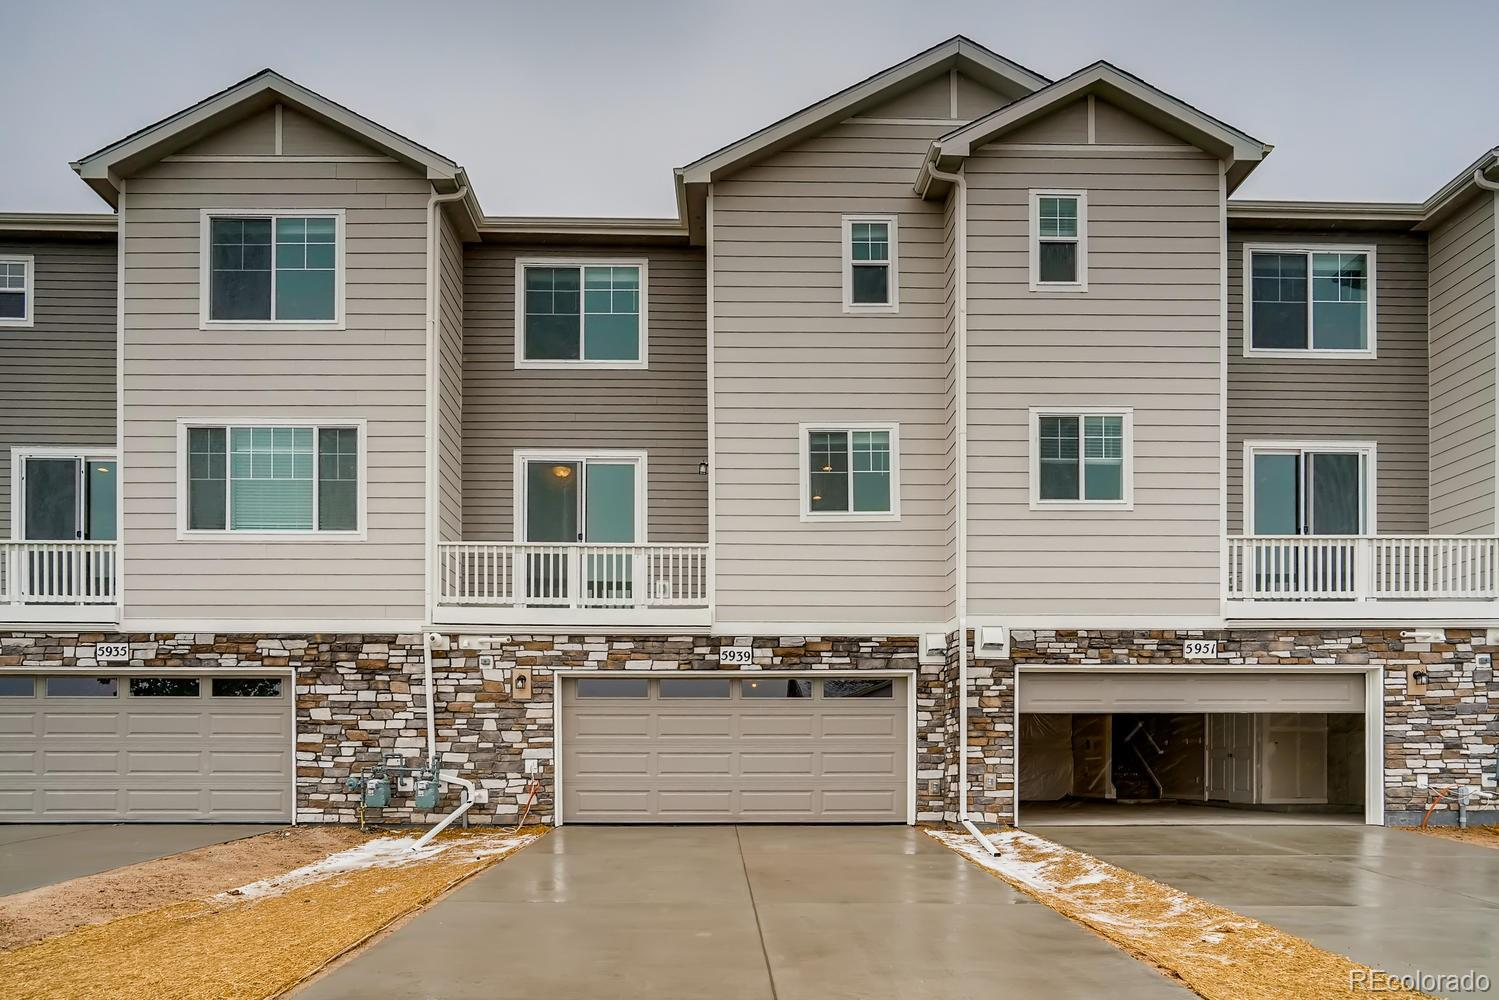 """Luxury Townhome in the heart of Castlerock with March/April 2021 completion! Photos are from similar home.  The beautiful Berkshire is a 2 bed, 2.5 bath, with oversized attached 2 car garage. Kitchen includes stainless steel appliances, granite countertops, gas range, dishwasher, and built-in microwave.  Open floorplan with spacious living area, kitchen island, dining space, and is perfect for entertaining.  Both bedrooms have en-suite bathrooms providing privacy and making it a great roommate layout.  Upstairs laundry conveniently located near both bedrooms.  Includes energy-efficient furnace, A/C, tankless water heater, and 2"""" white blinds. Right outside your back door, you can enjoy miles of walking trails through the beautiful scenery of the nature filled canyons. Don't miss out on living at The Enclave, just moments away from major highways, shopping, dining, award winning Douglas County Schools, and multiple outdoor activities!"""